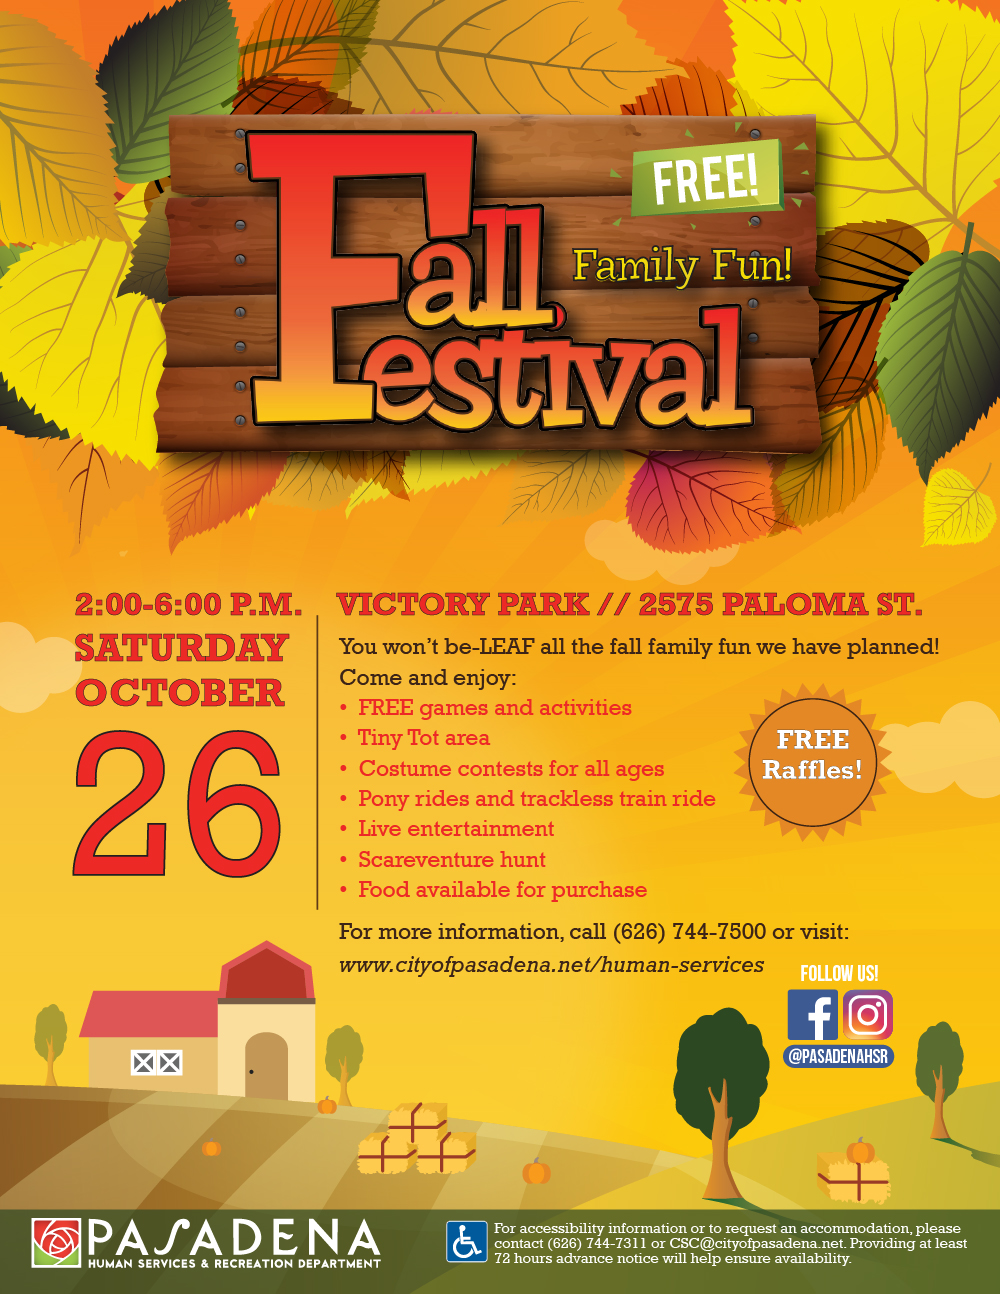 flyer with date, time and location of fall festival